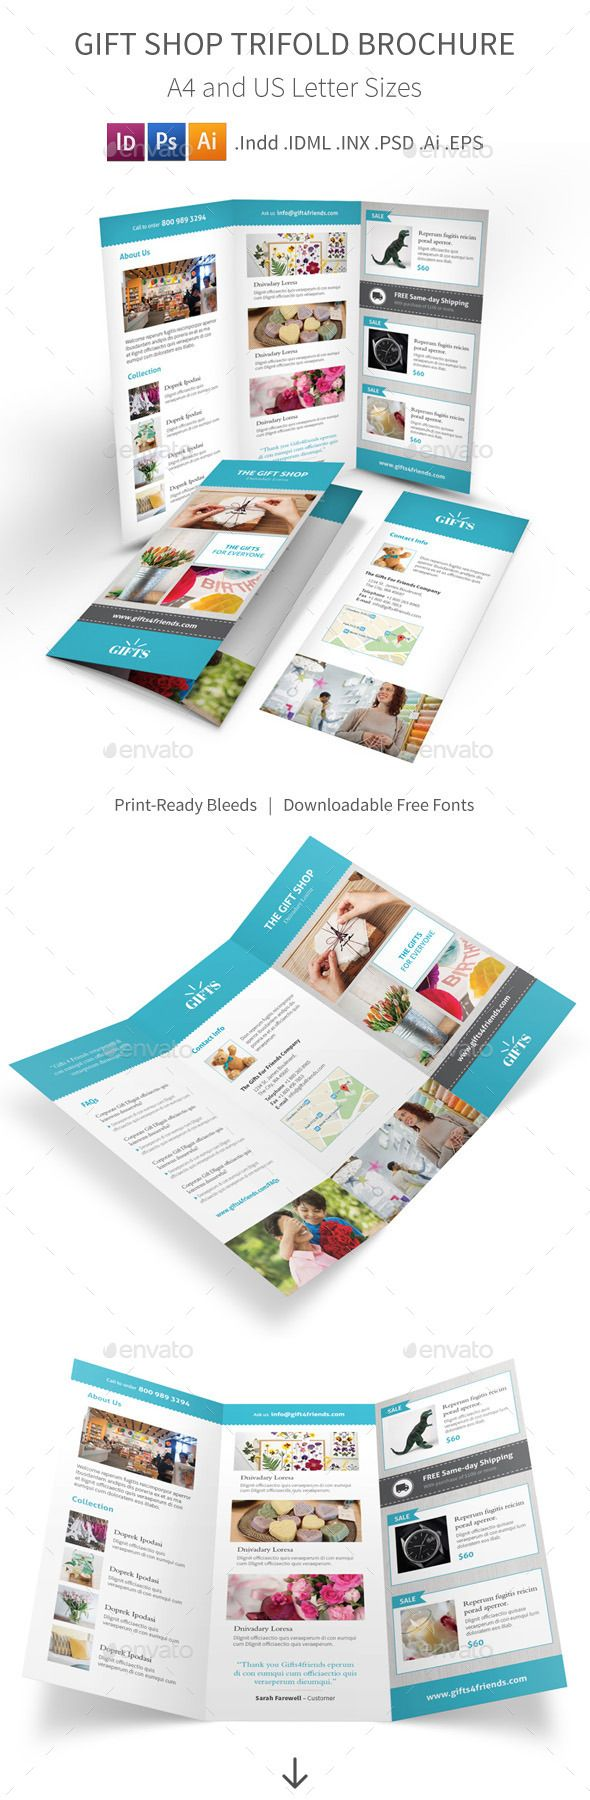 Gift Shop Trifold Brochure Brochures Brochure Template And Template - Informational brochure template